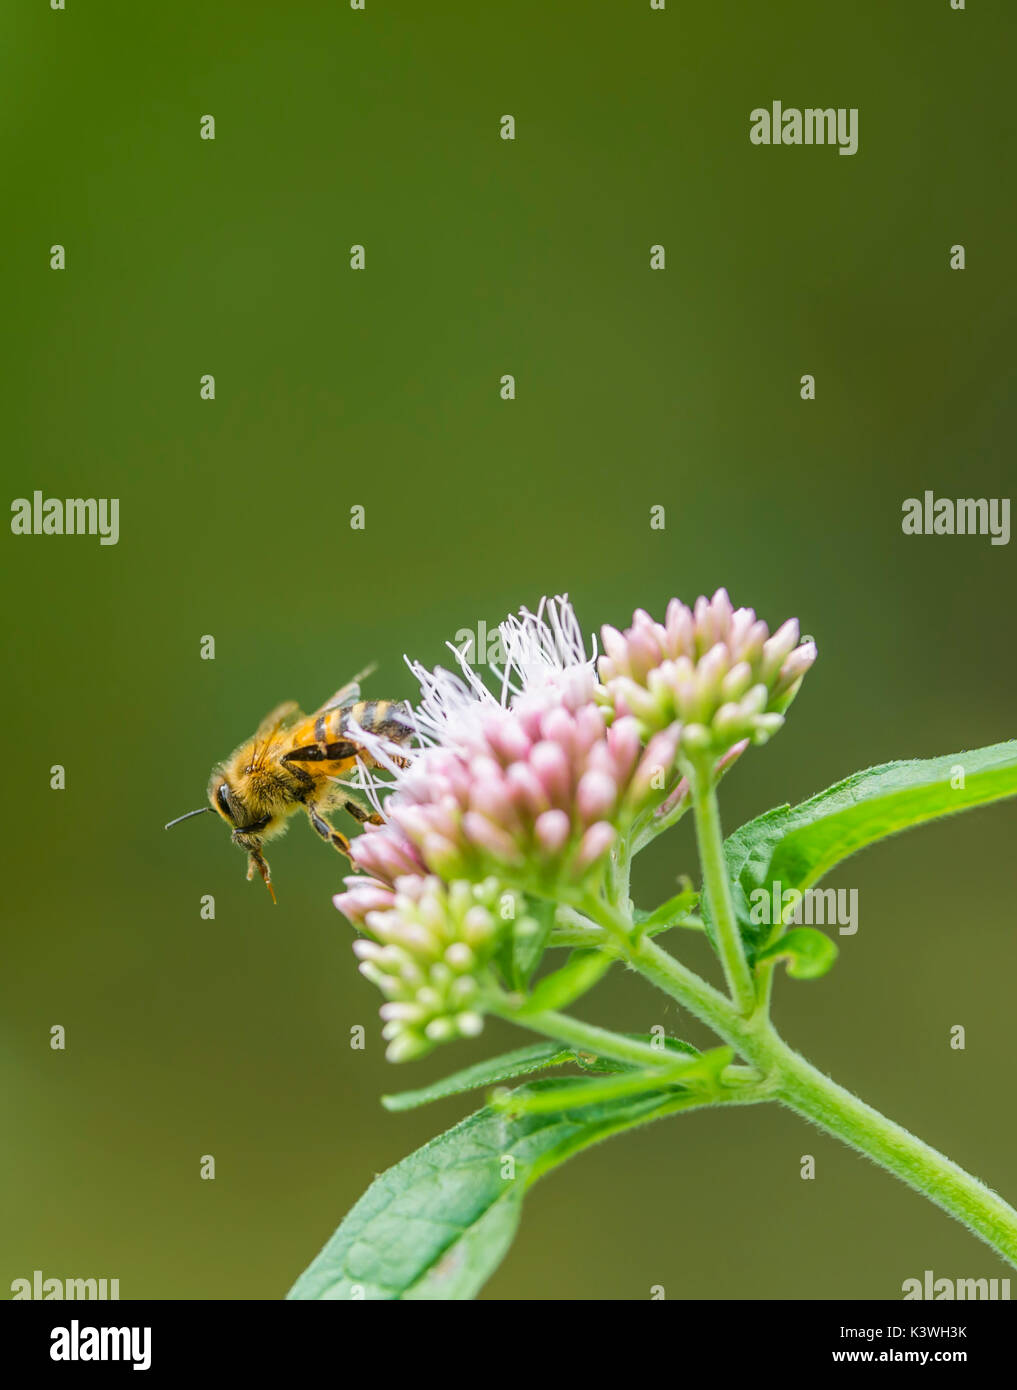 Honey bee flying from a Eupatorium cannabinum plant, also known as Hemp agrimony or Holy rope, in late Summer in Sussex, UK. Portrait with copy space. - Stock Image